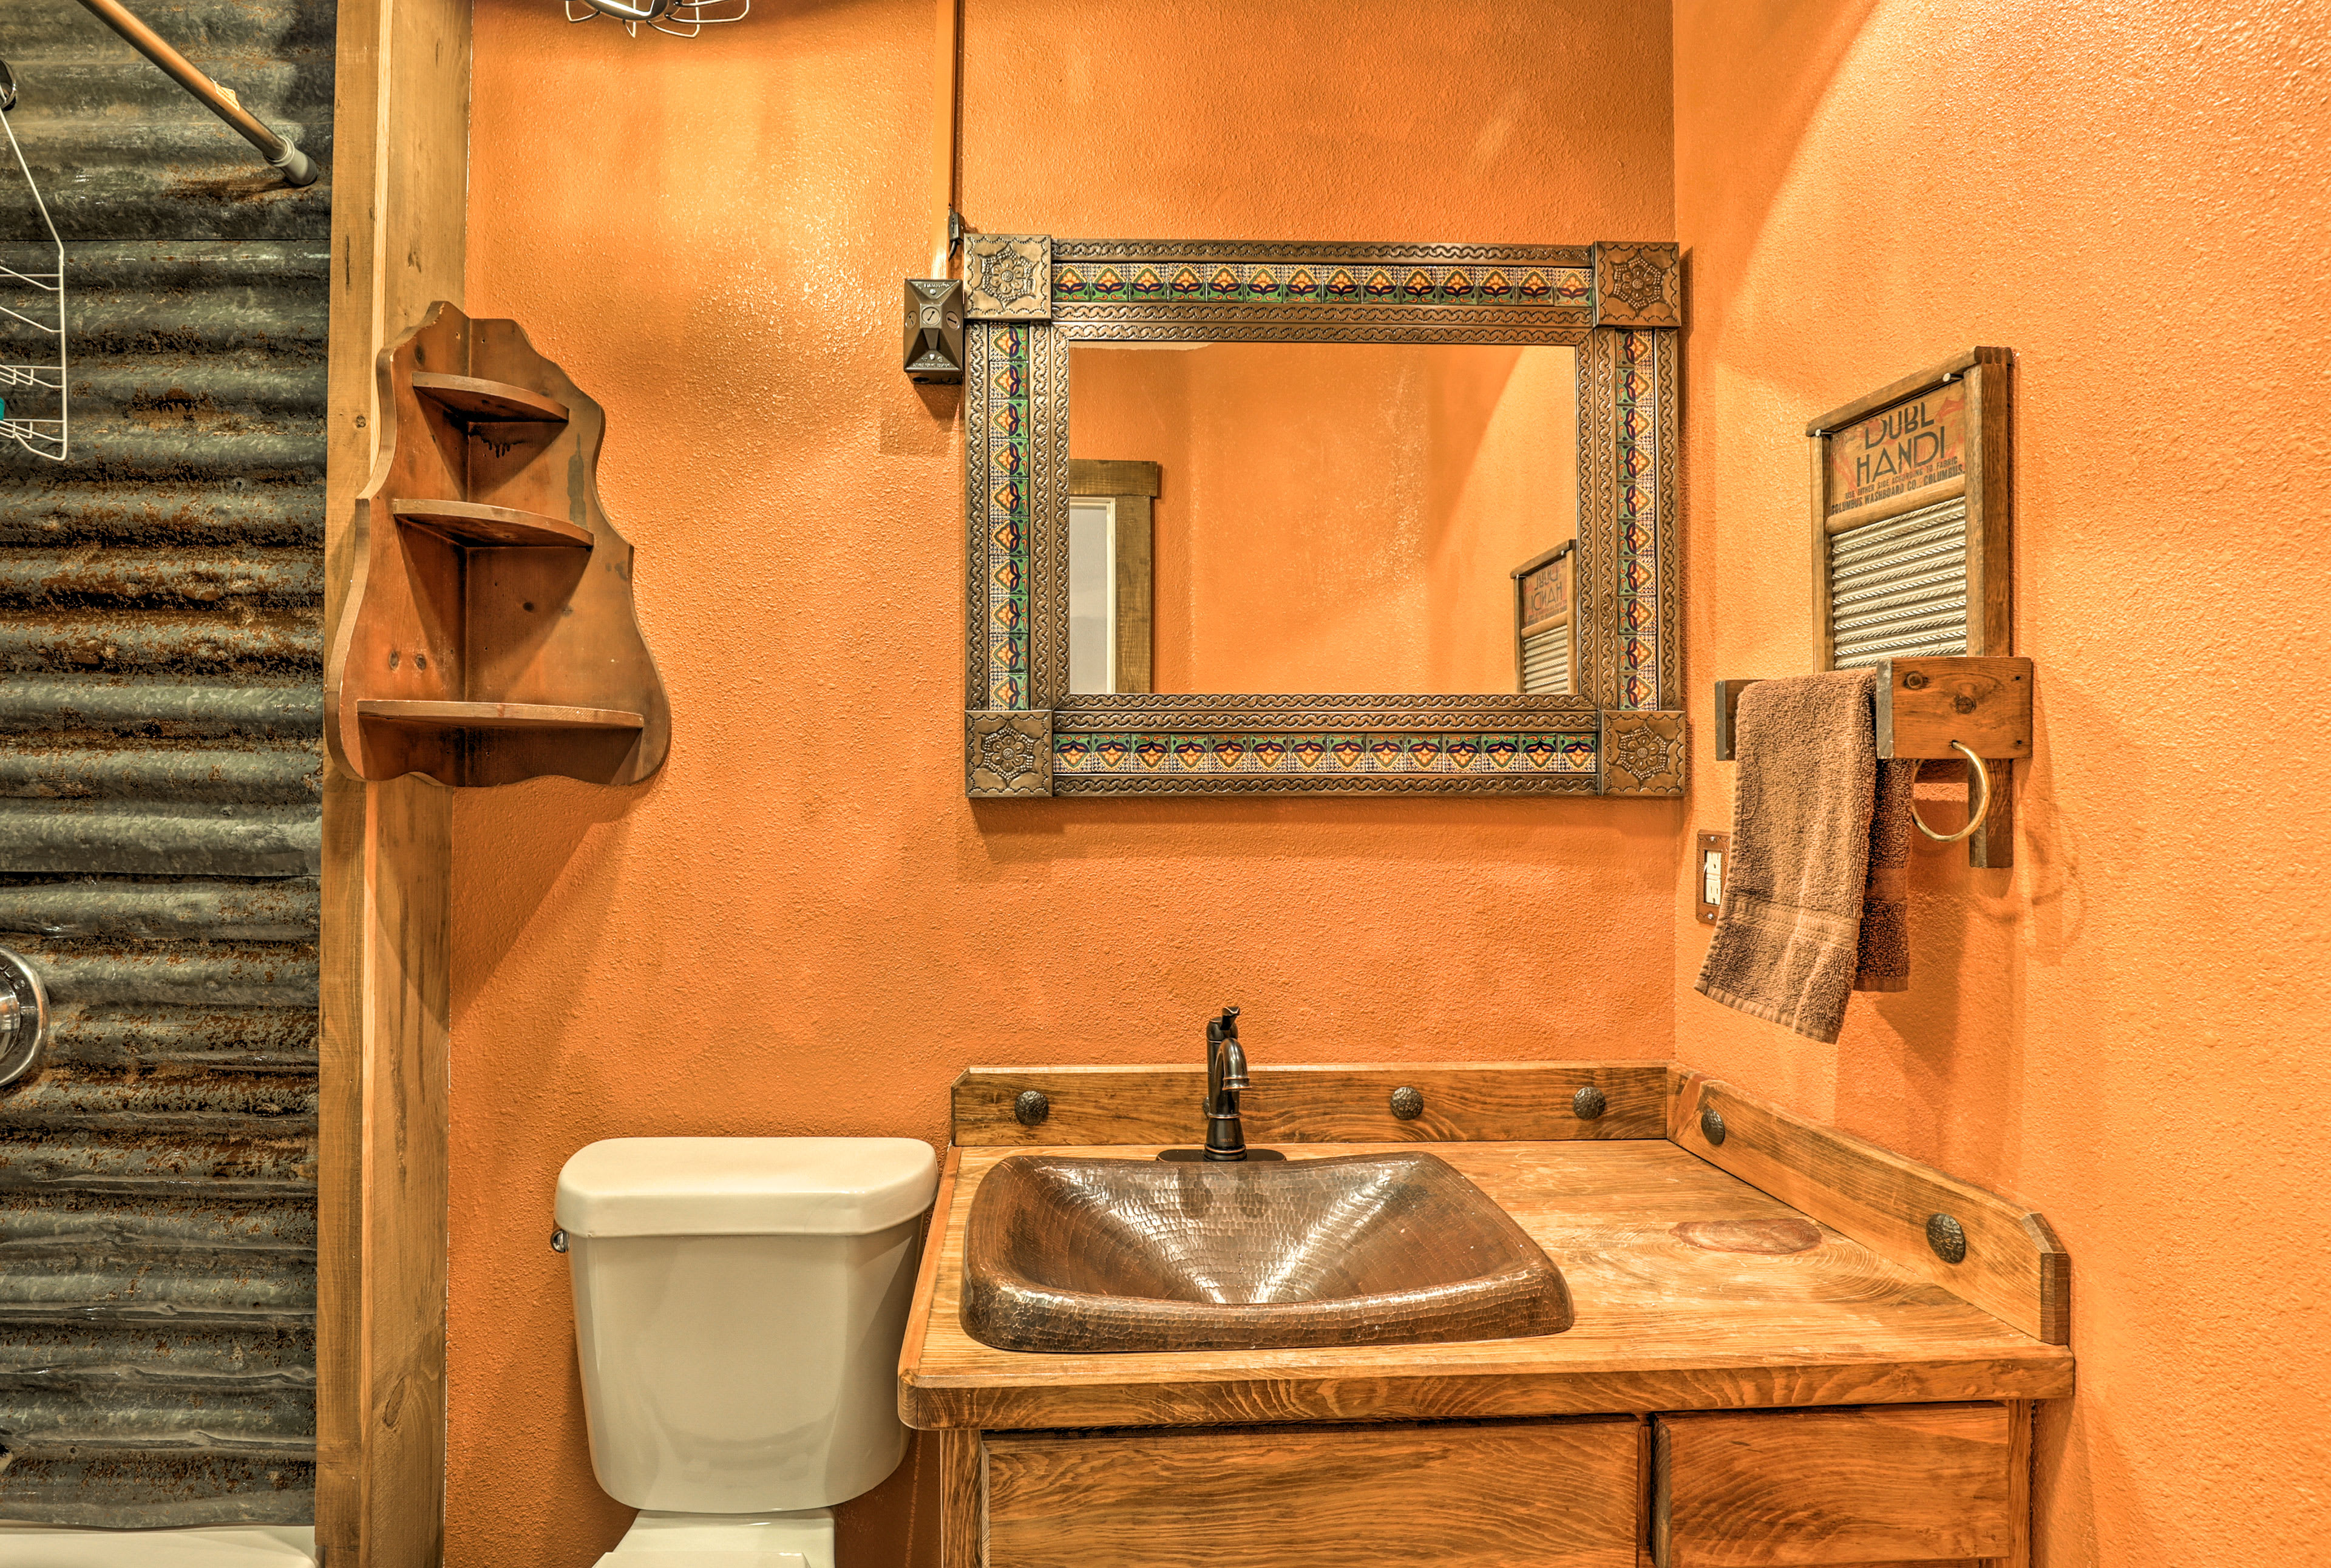 Wash up at this vanity with a artistic vessel sink.